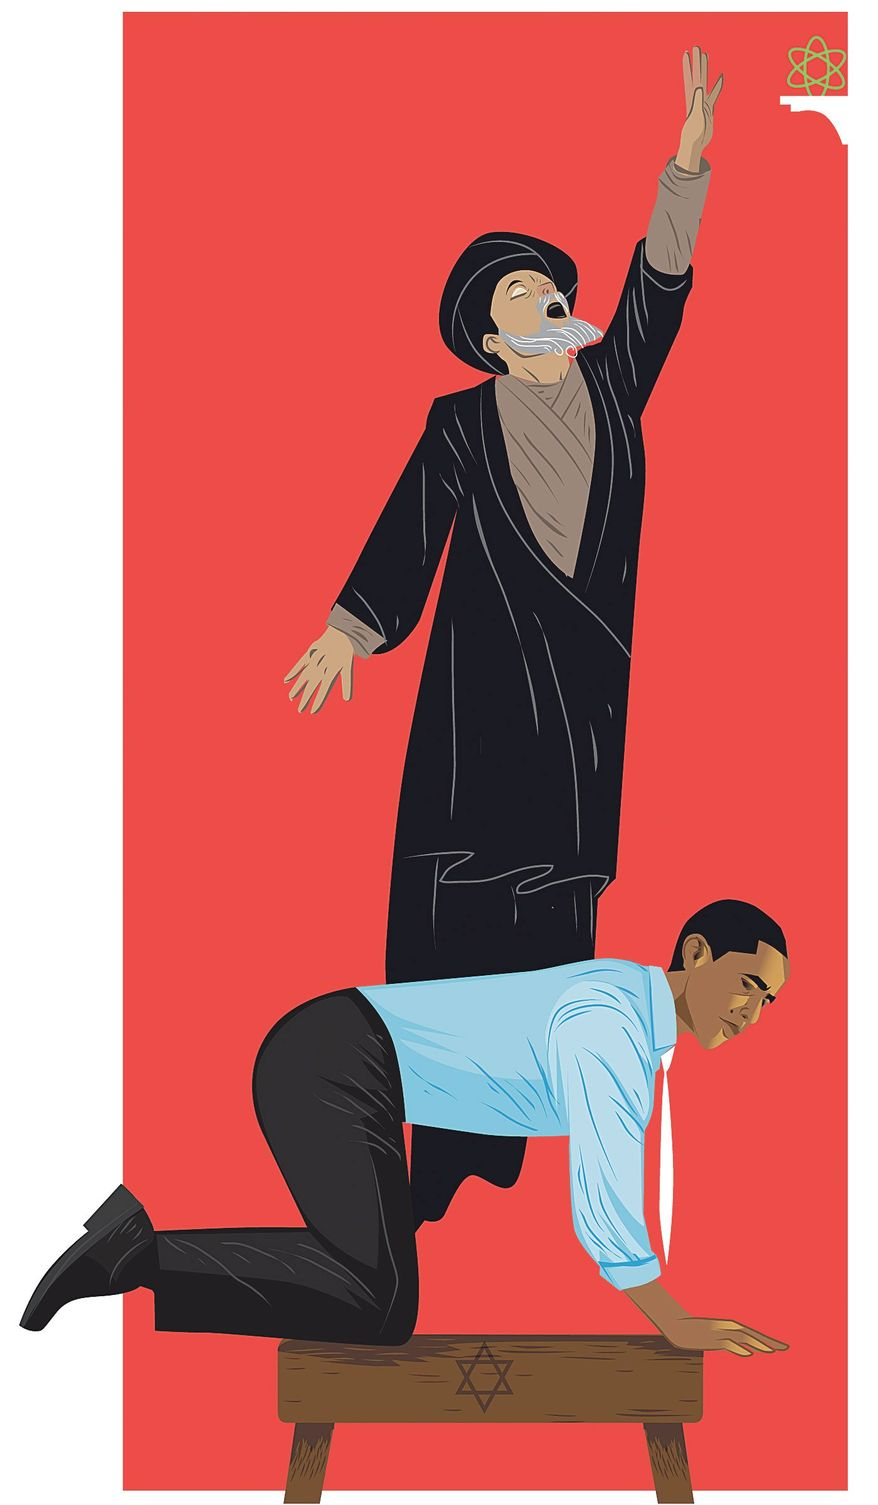 Illustration on the Obama administrations role in Iranian nuclear ambitions by Linas Garsys/The Washington Times